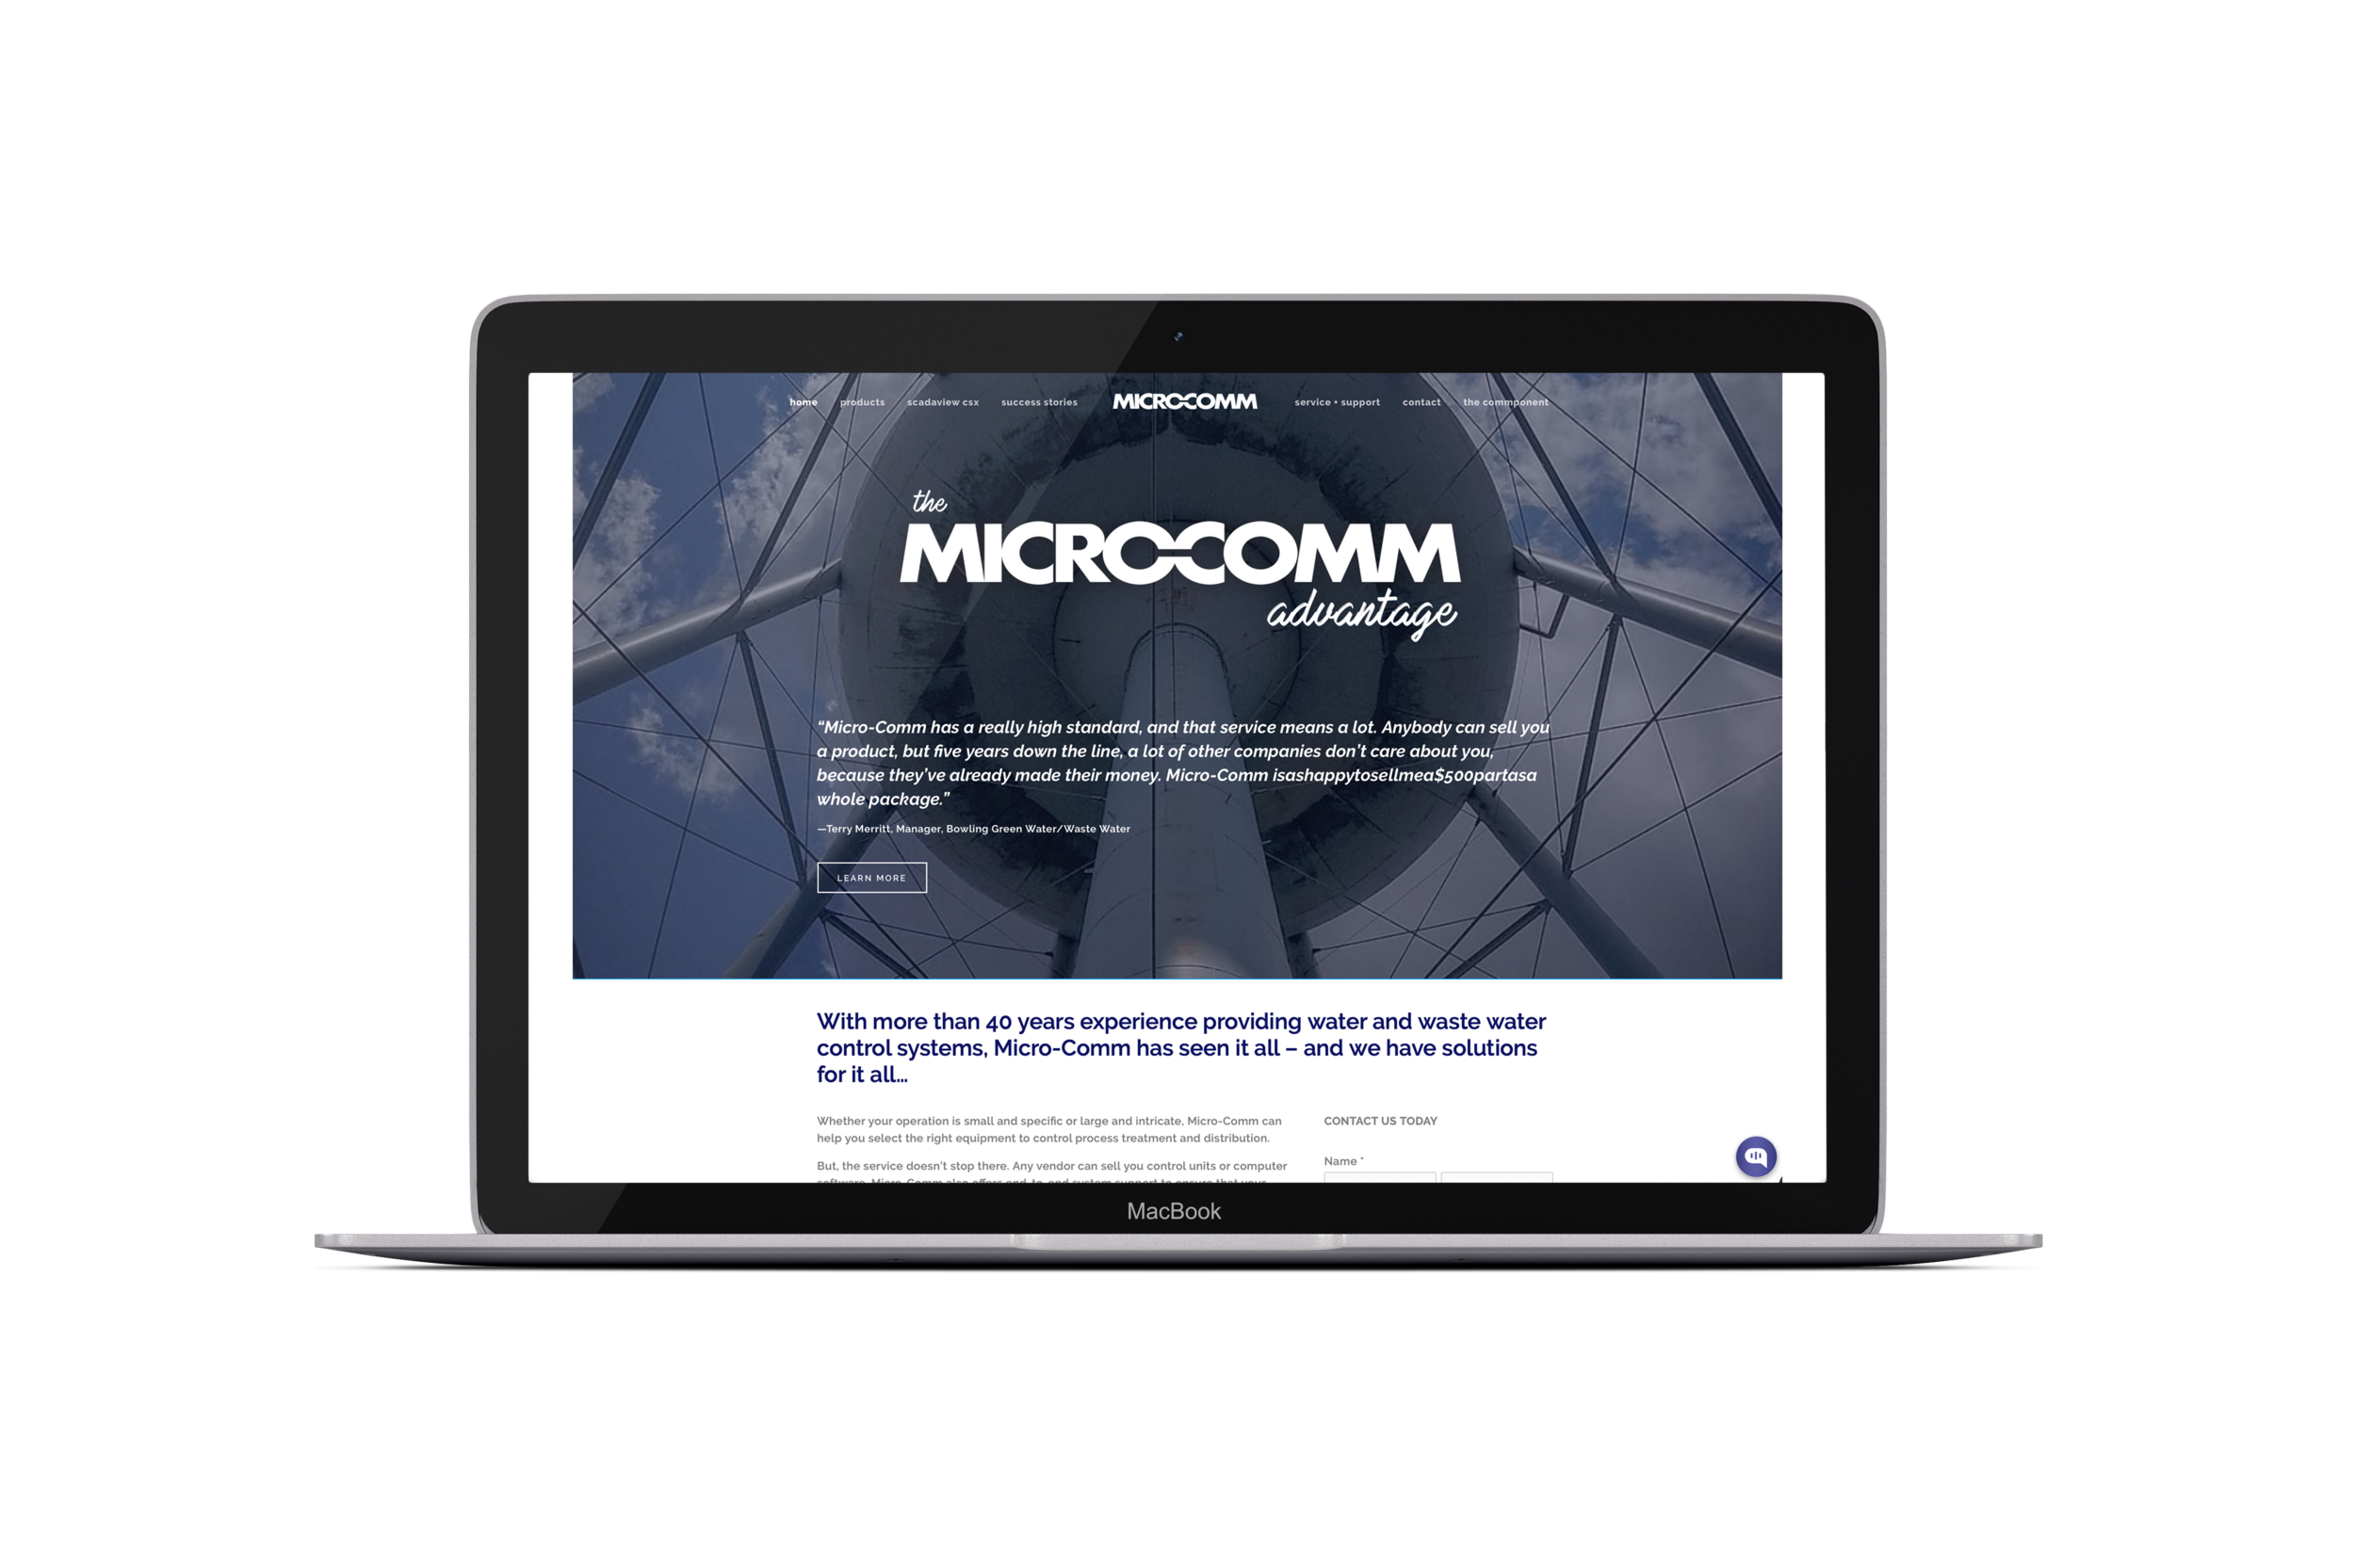 Microcomm macbook web mockup copy.png